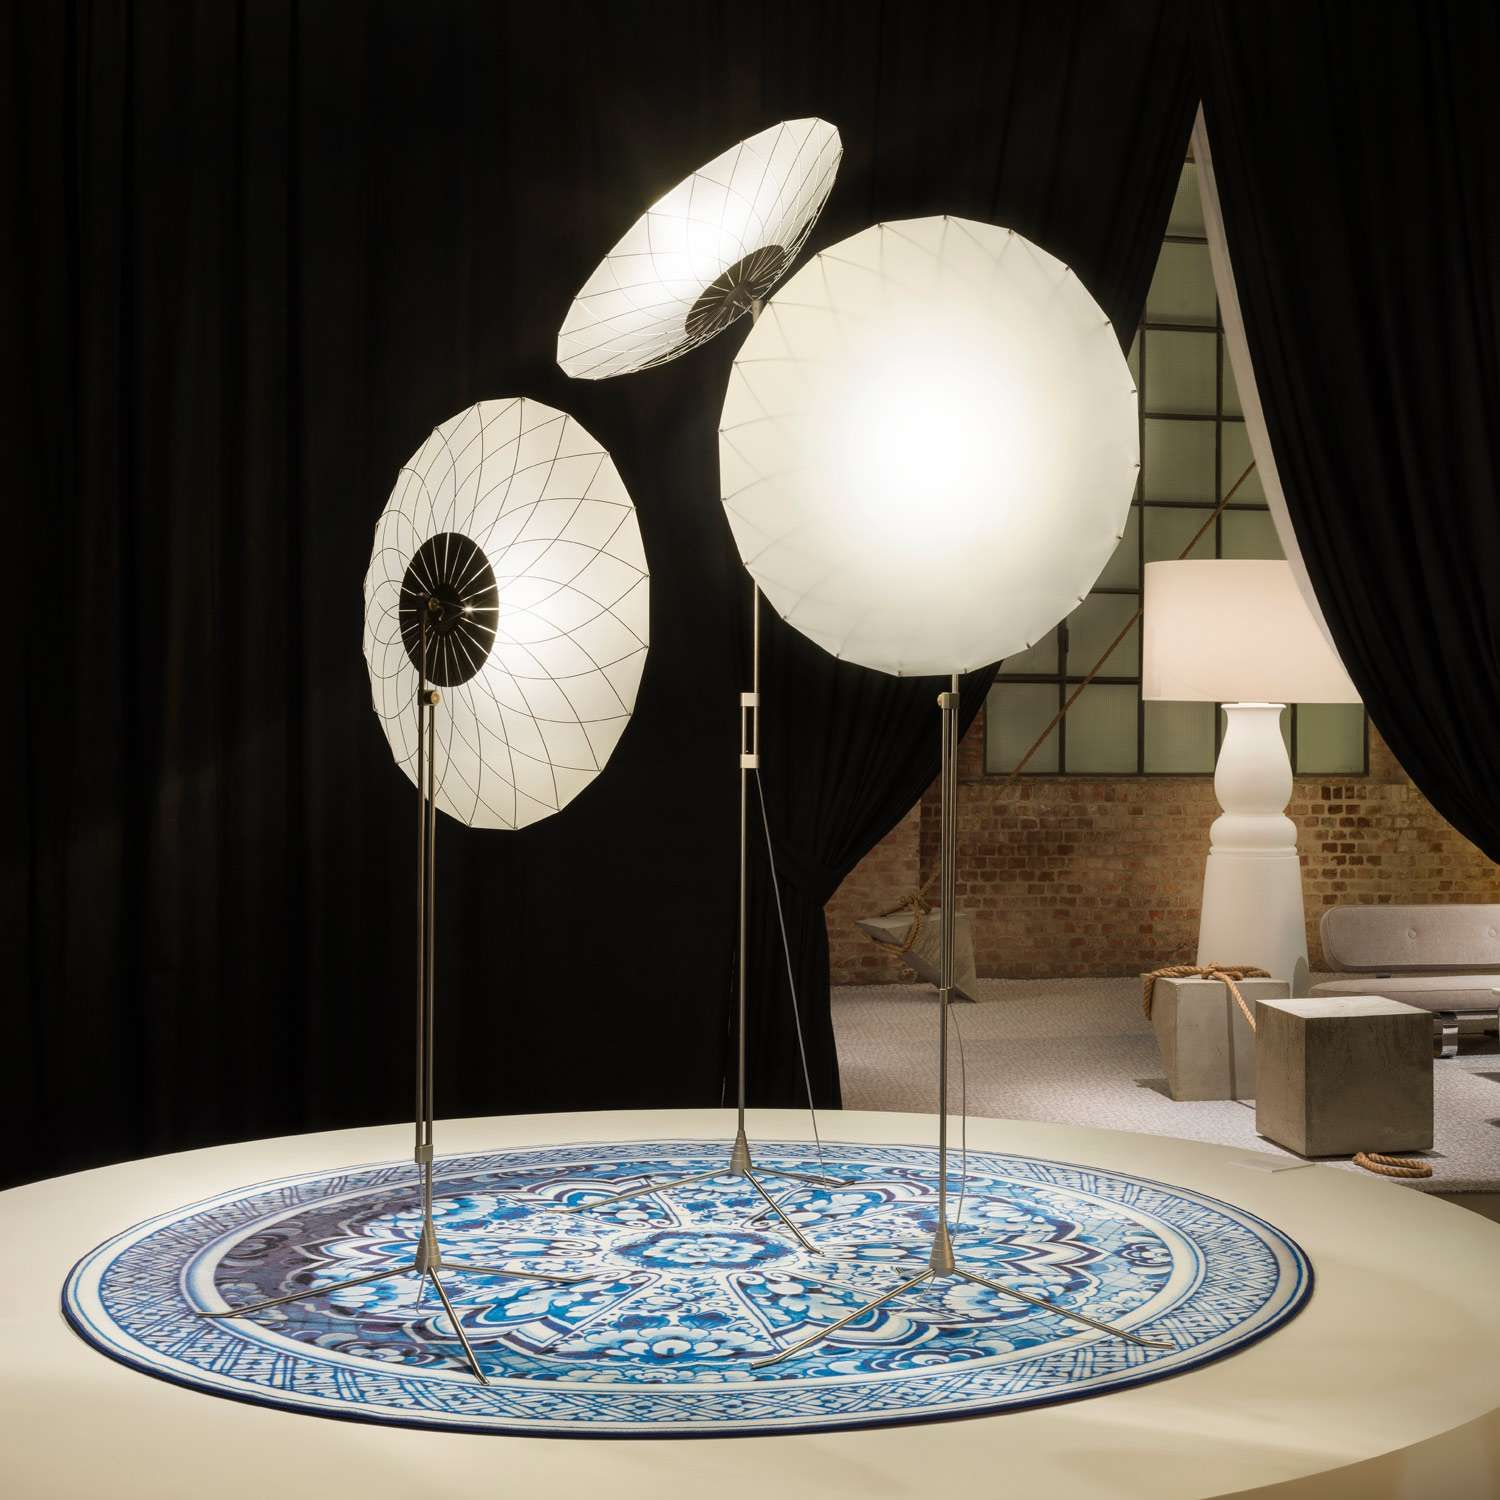 Make A Statement With Moooi Table And Floor Lamps Giveaway Moooi Design Salon Interior Design Floor Lamp Design